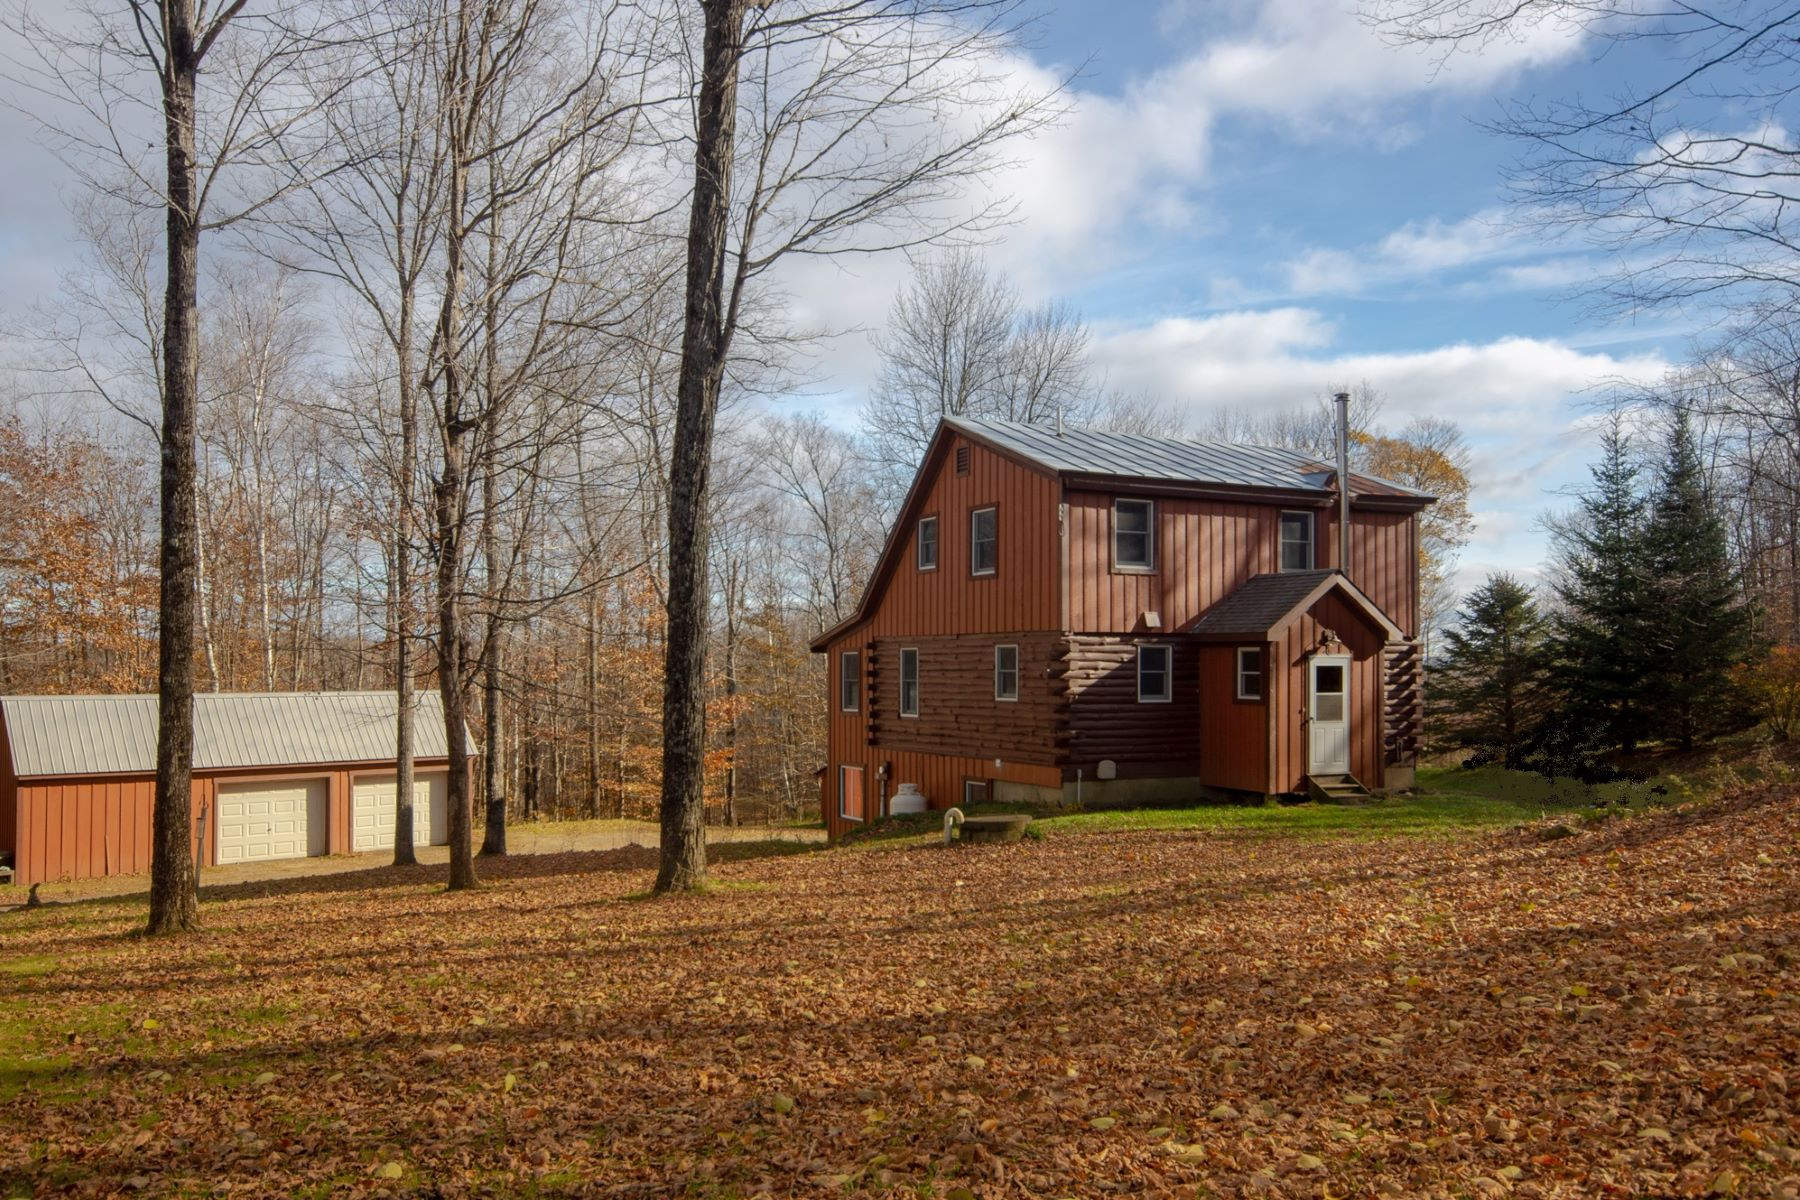 Single Family Home for Sale at 317 Brook Road, Strafford 317 Brook Rd Strafford, Vermont 05072 United States